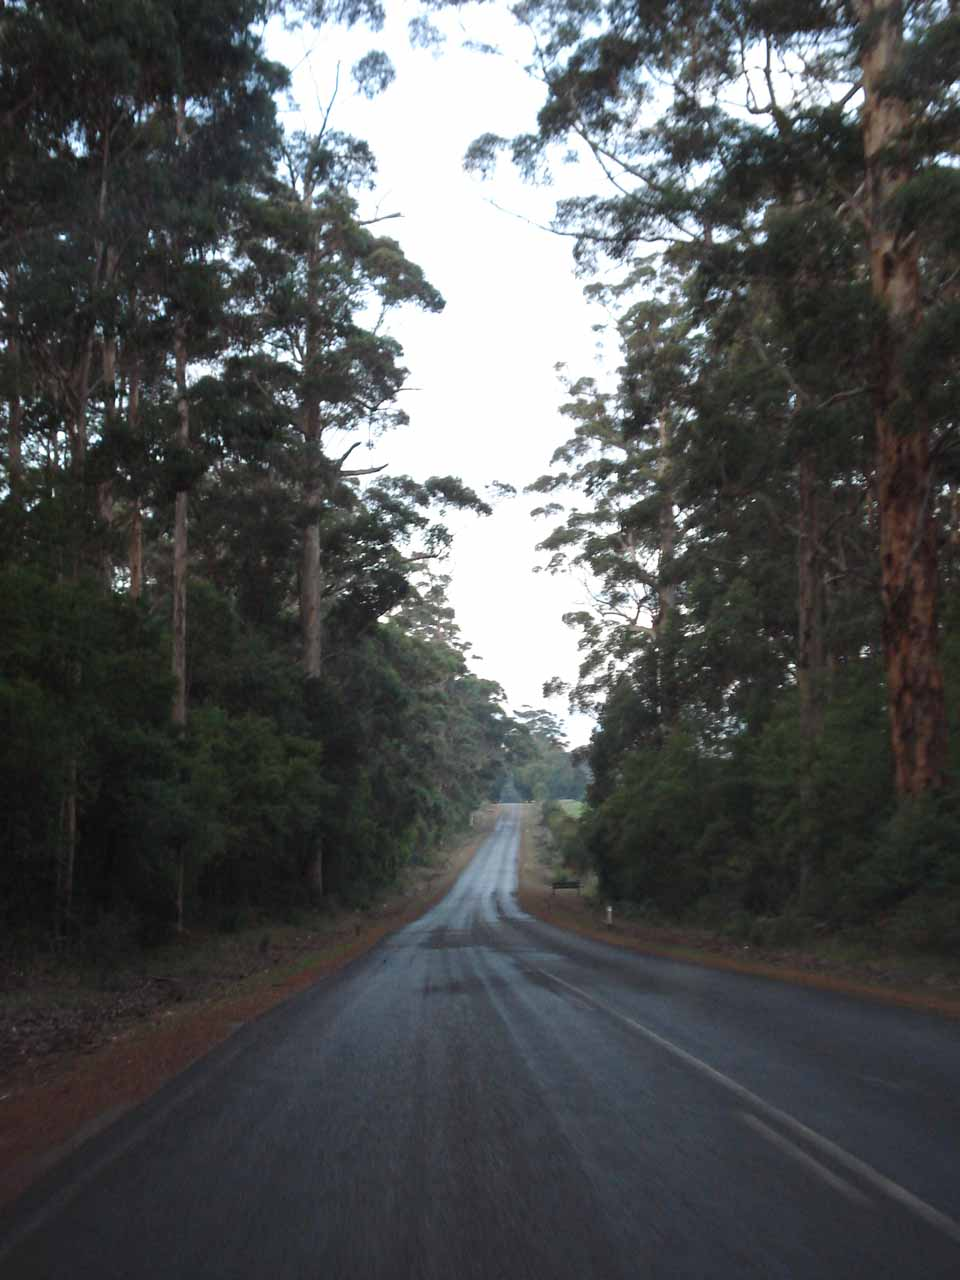 Driving on the wooded roads towards Northcliffe from Pemberton